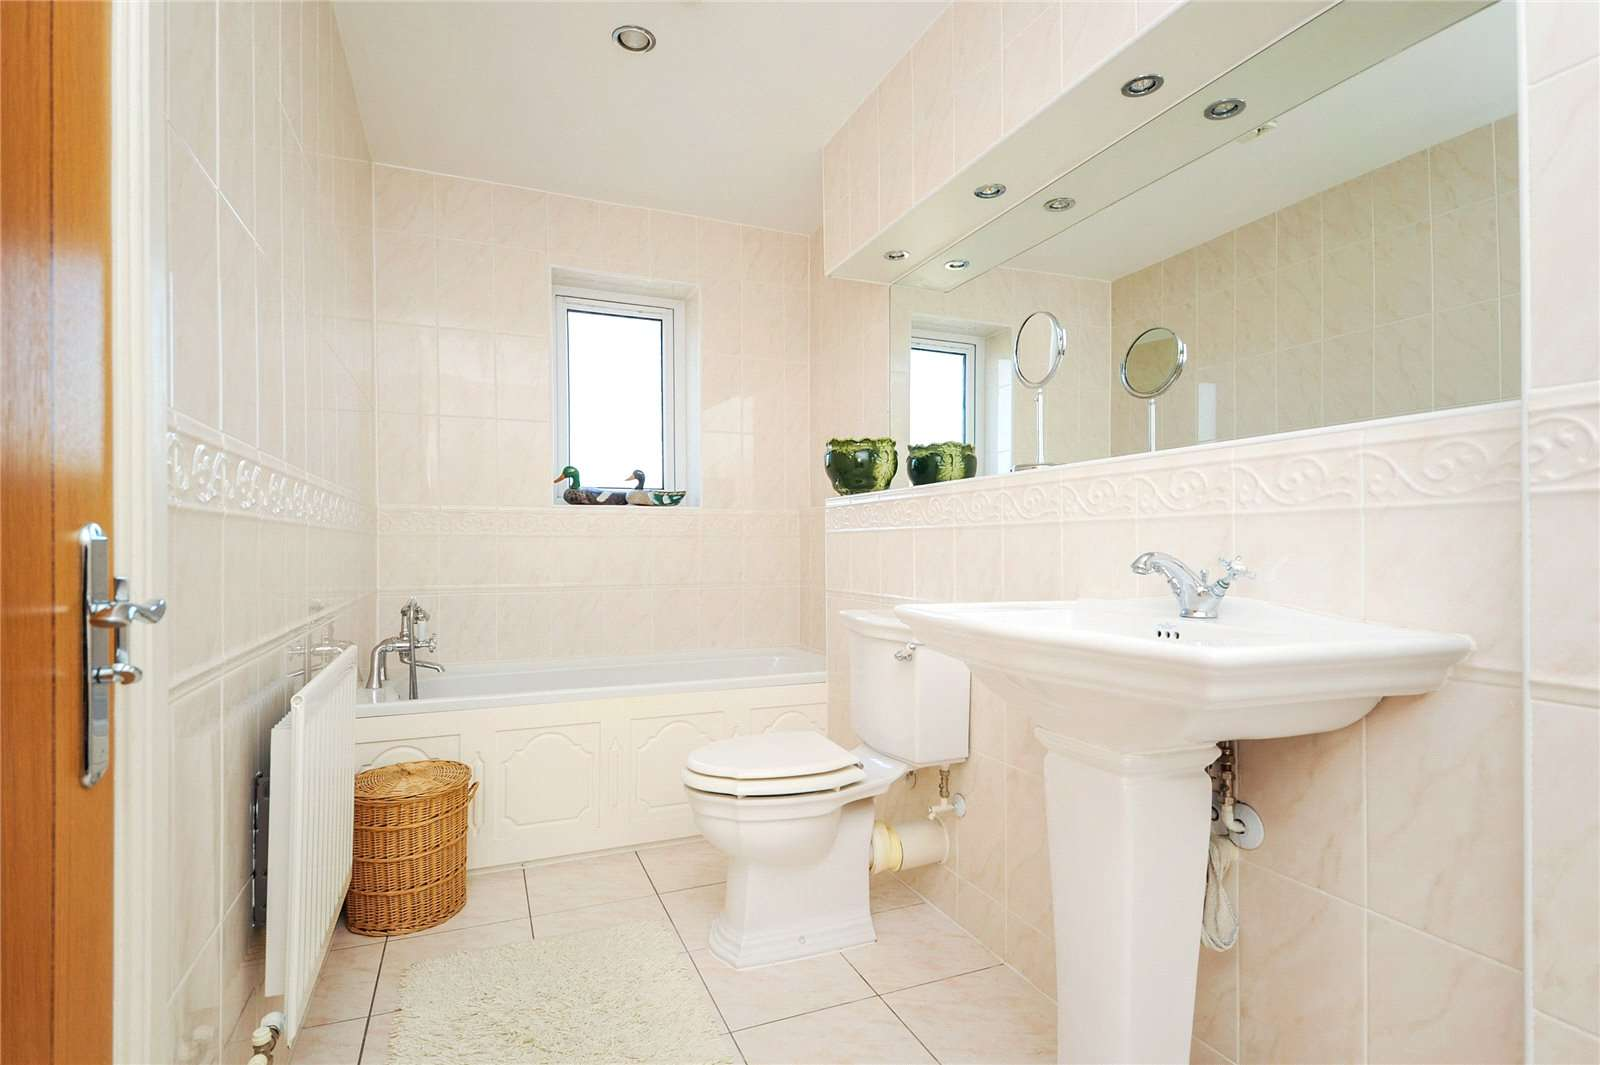 Savills | Flat for sale in Cardiff